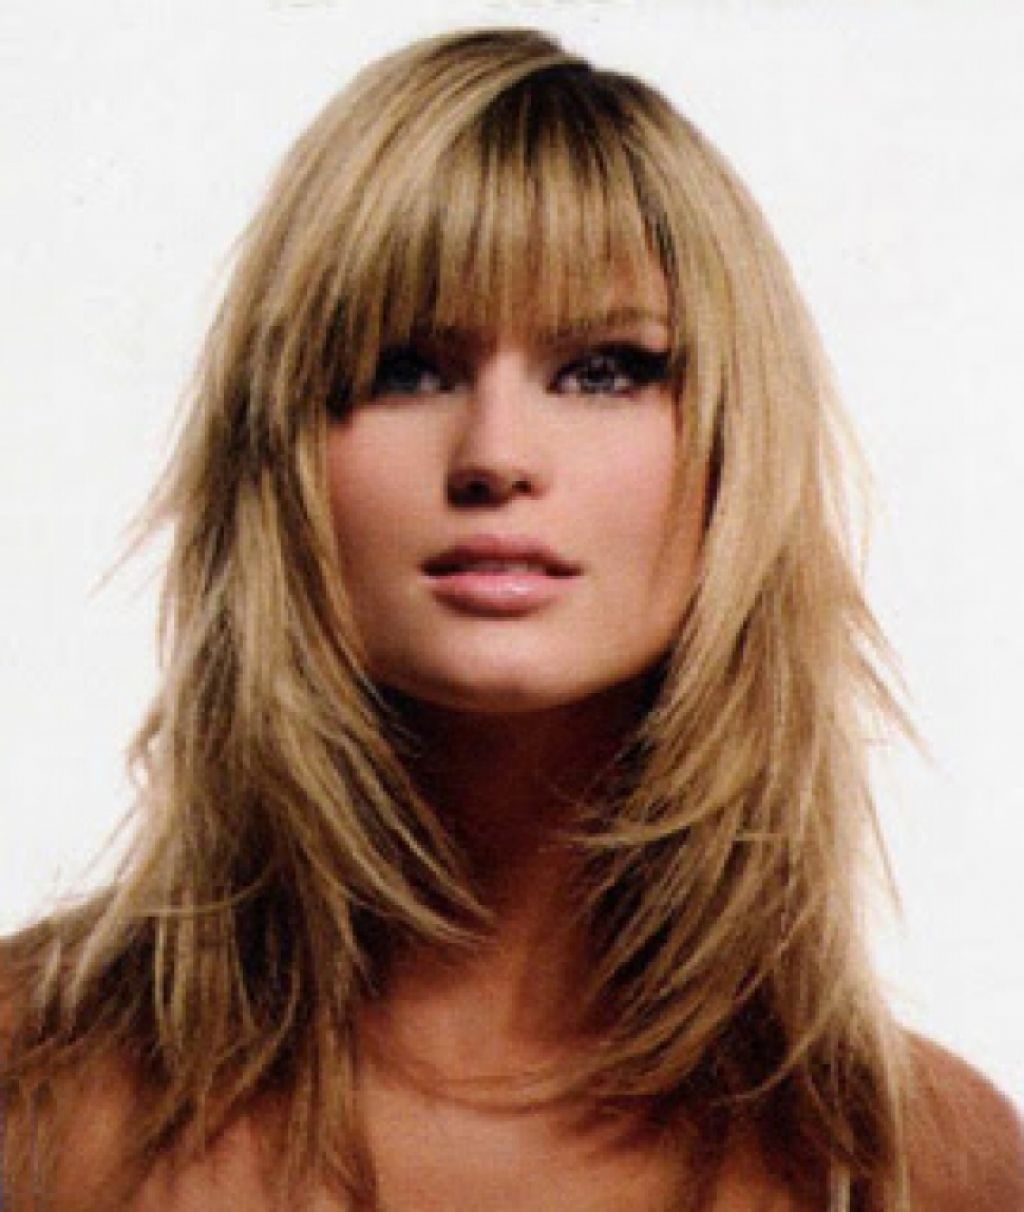 long shaggy hairstyle cuts ideas for ladies - hairstyle ideas for